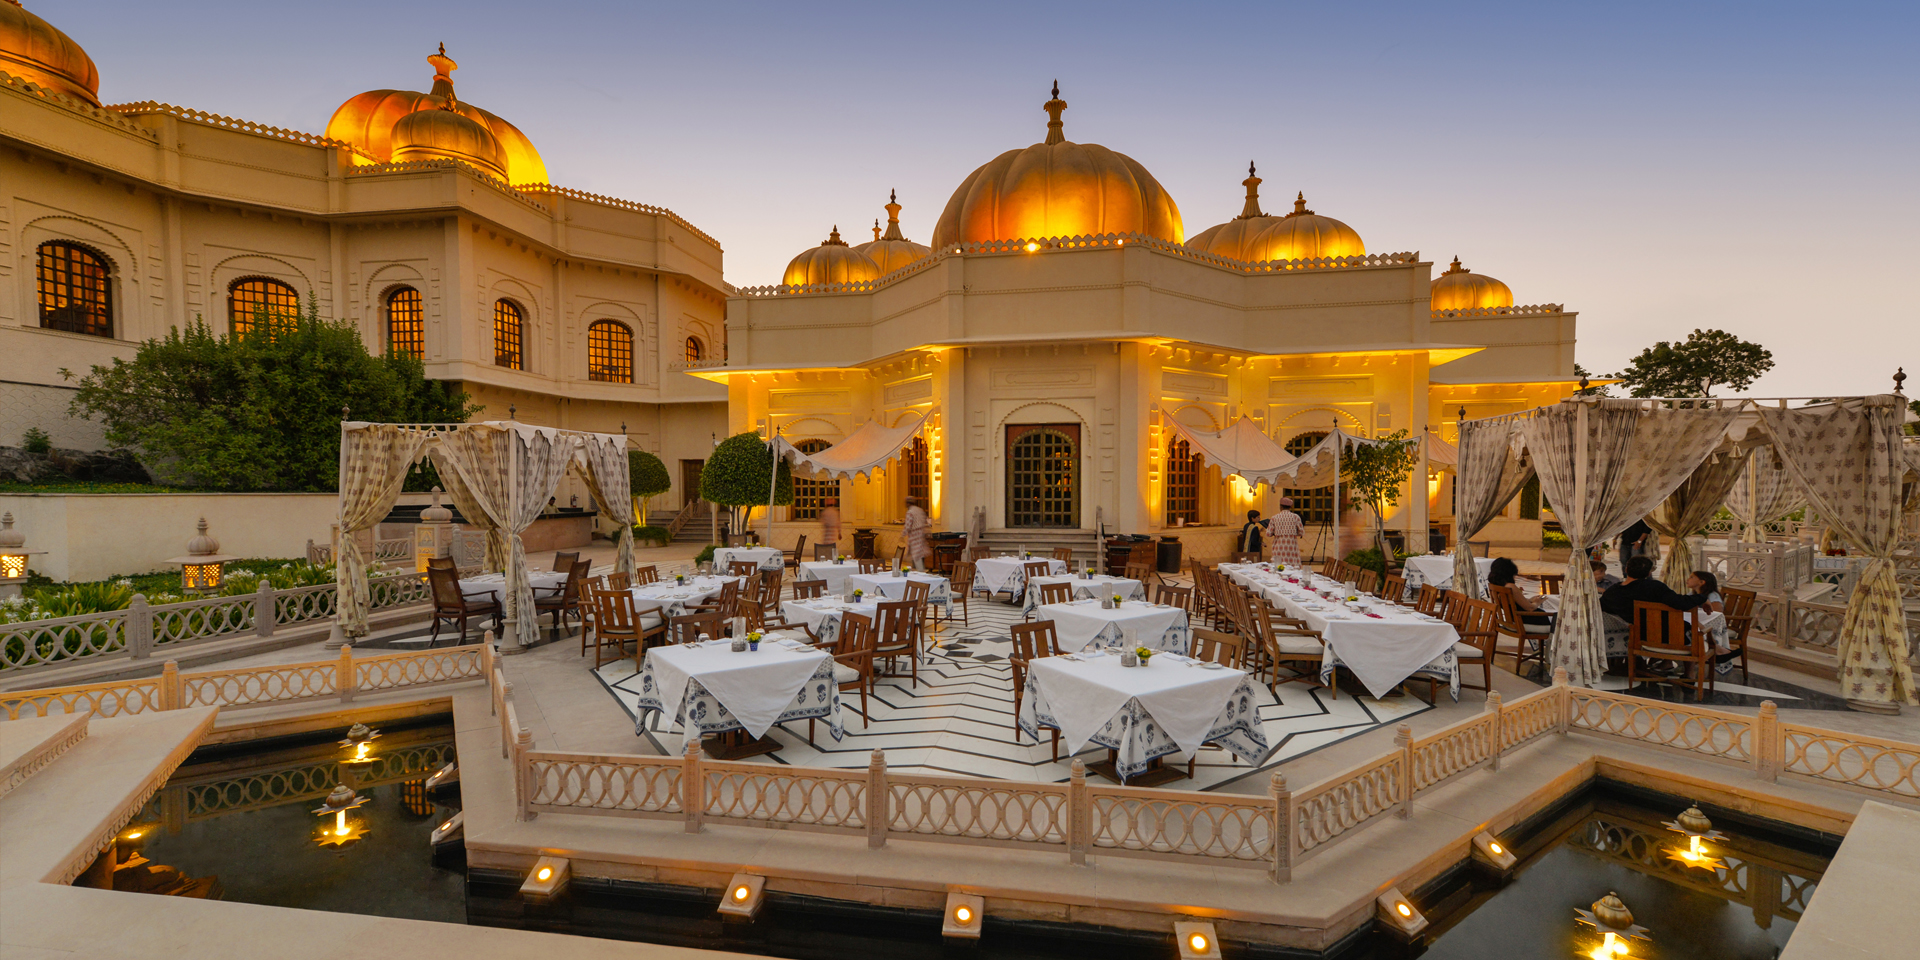 The oberoi udaivilas palace mallatalai udaipur banquet for Top design hotels india